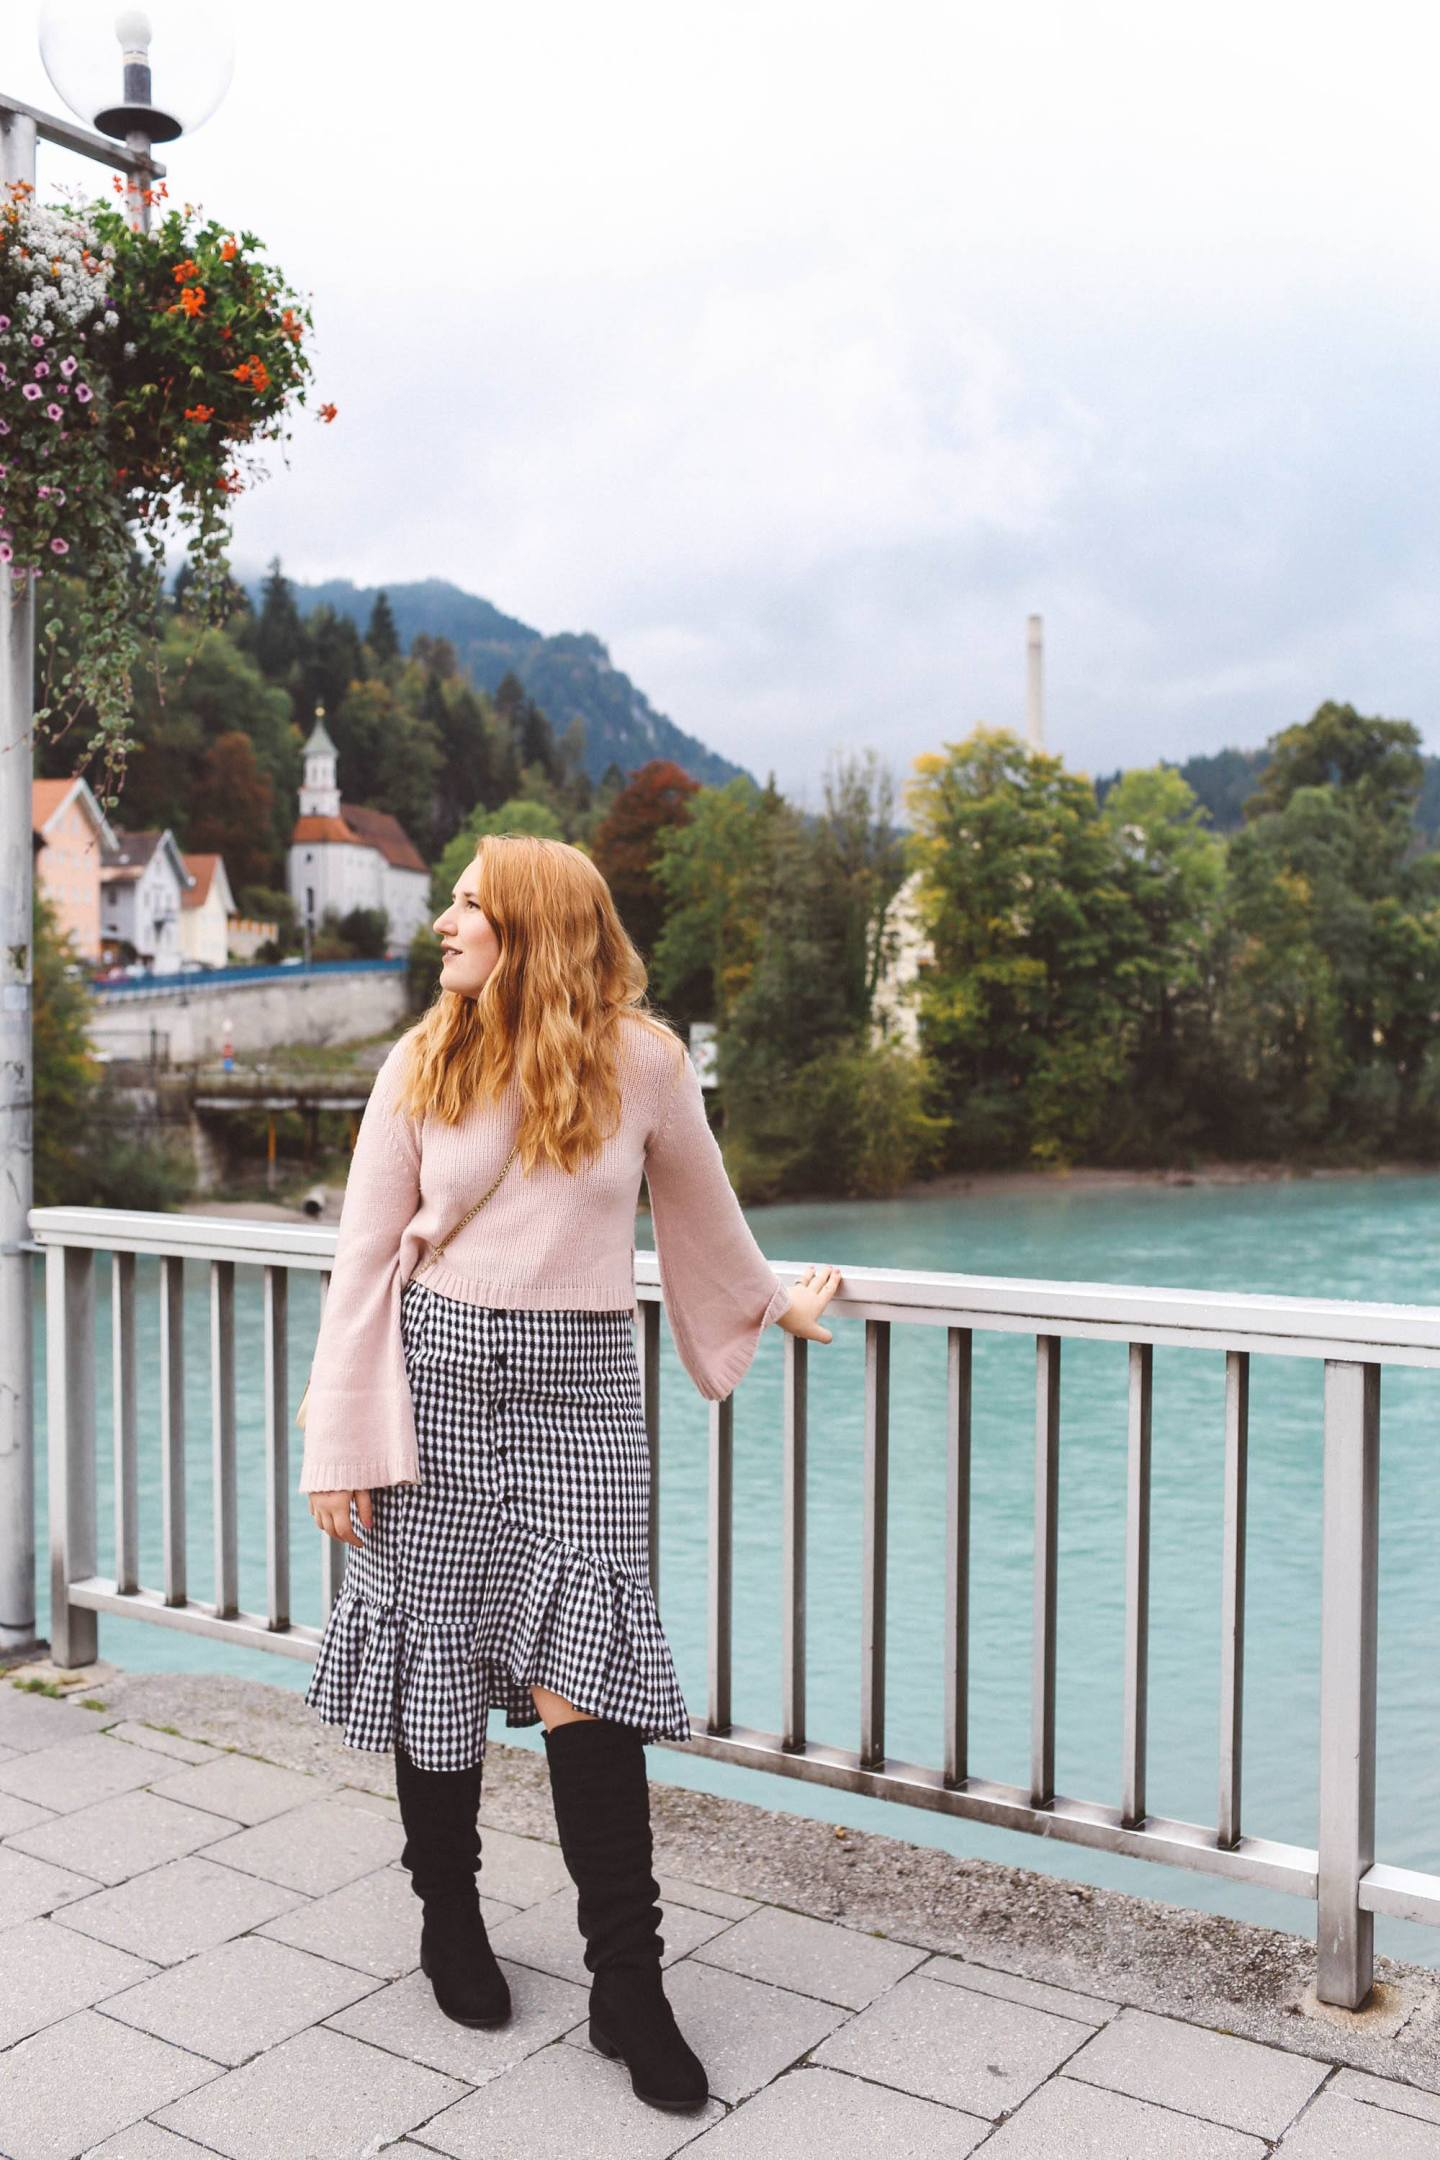 Füssen, Germany pink sweater gingham skirt